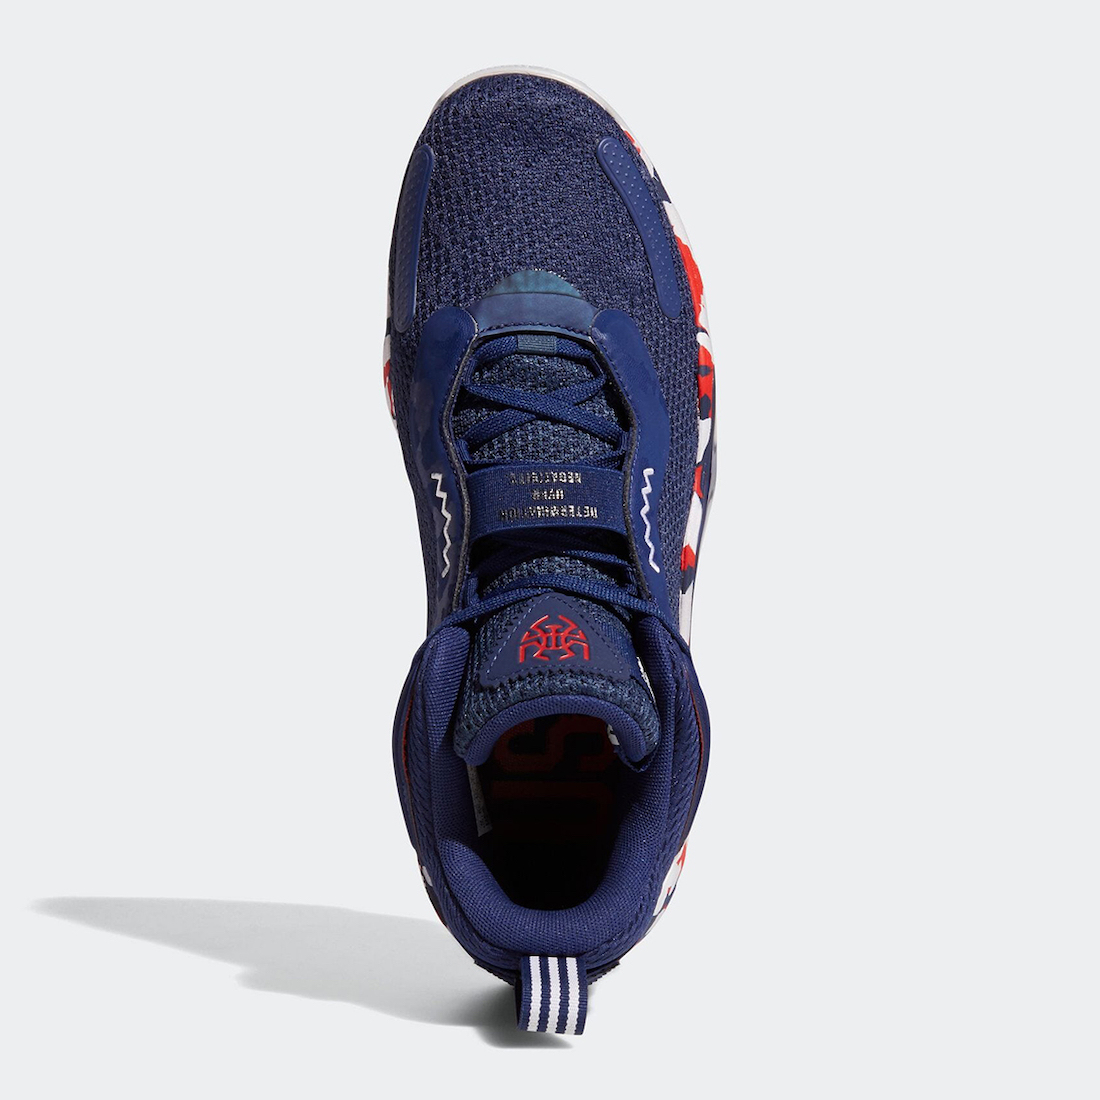 adidas DON Issue 3 USA GW2945 Release Date Info